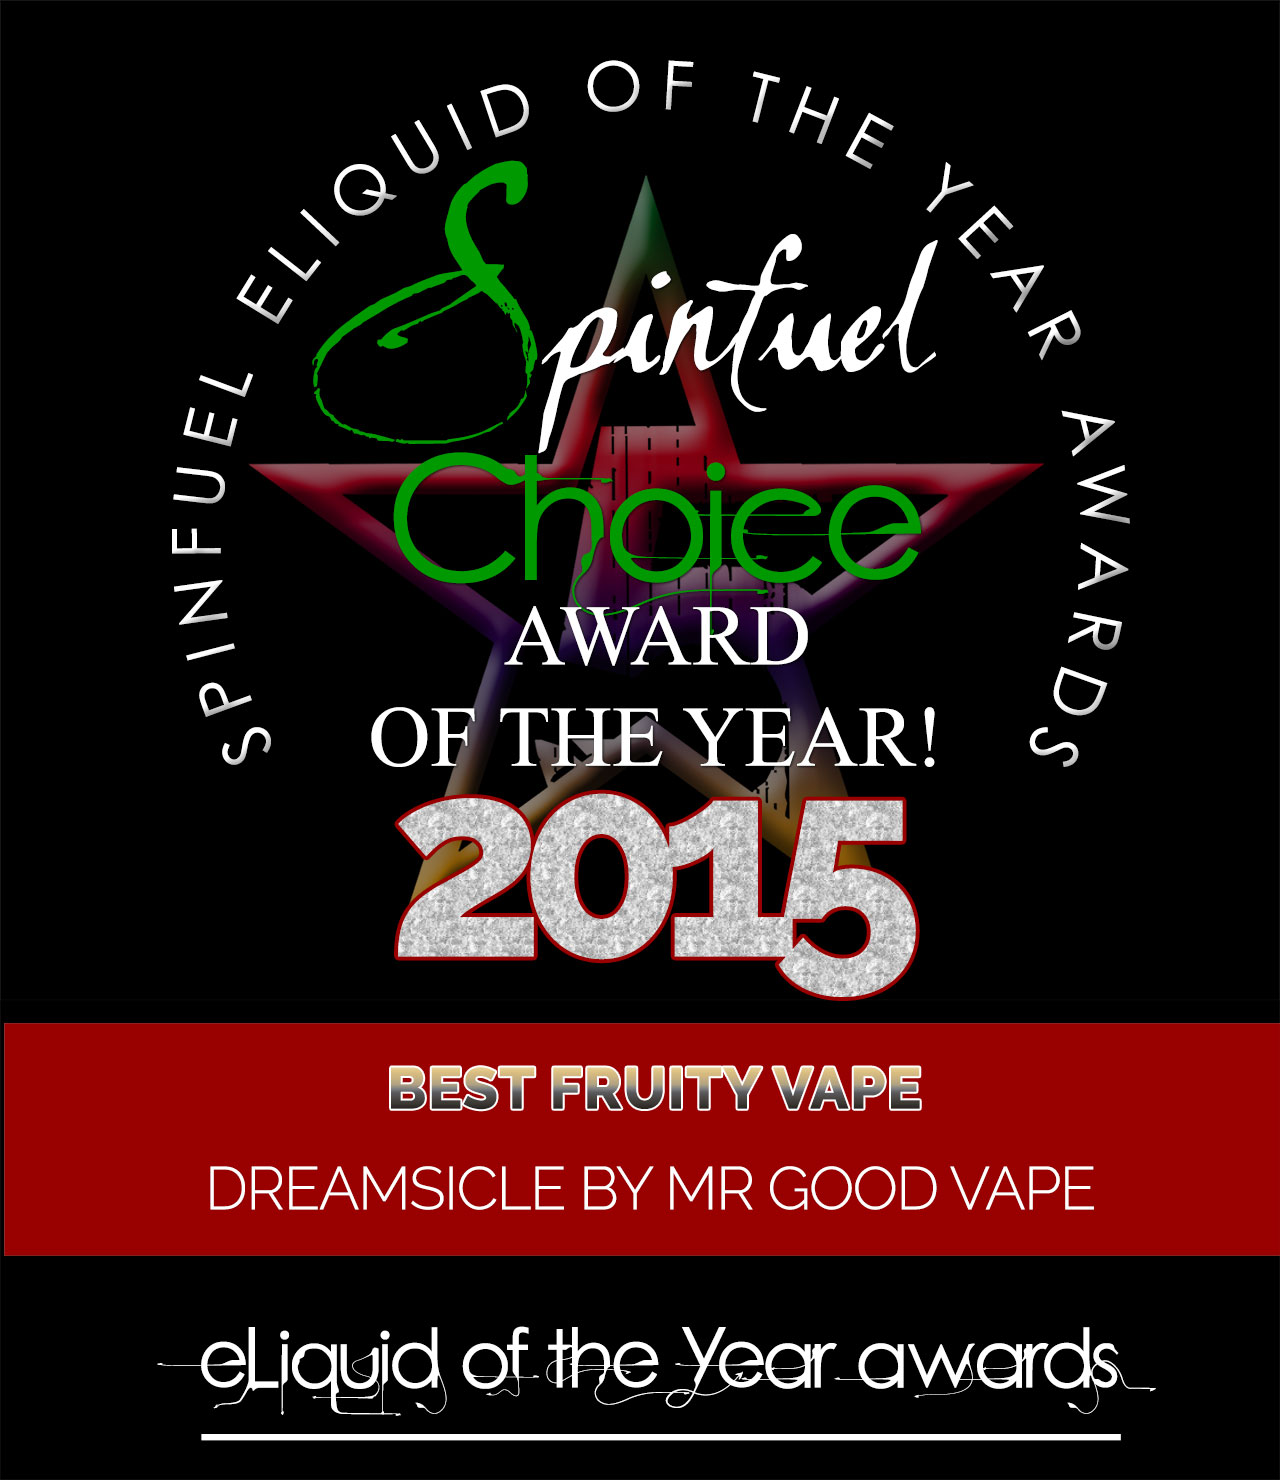 FRUITY-DREAMSICLE Spinfuel Choice Award 2015